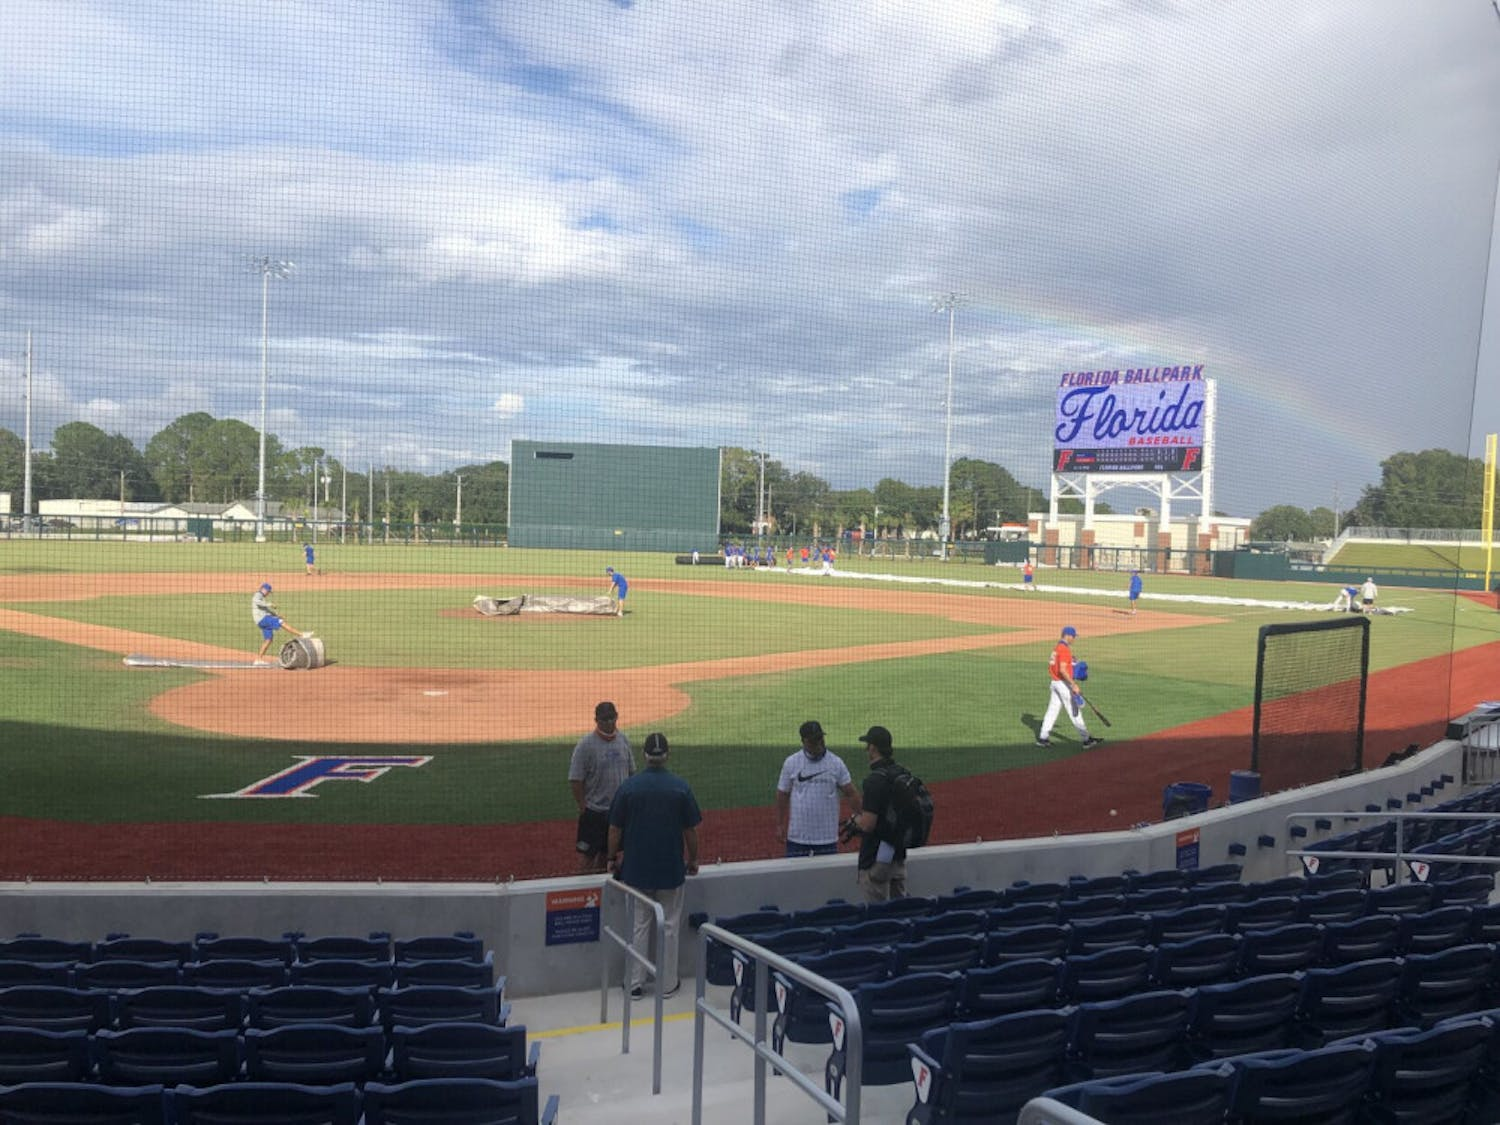 Florida Ballpark at Alfred A. McKethan Field after Friday's scrimmage. Construction of the new park finished in August of this year.